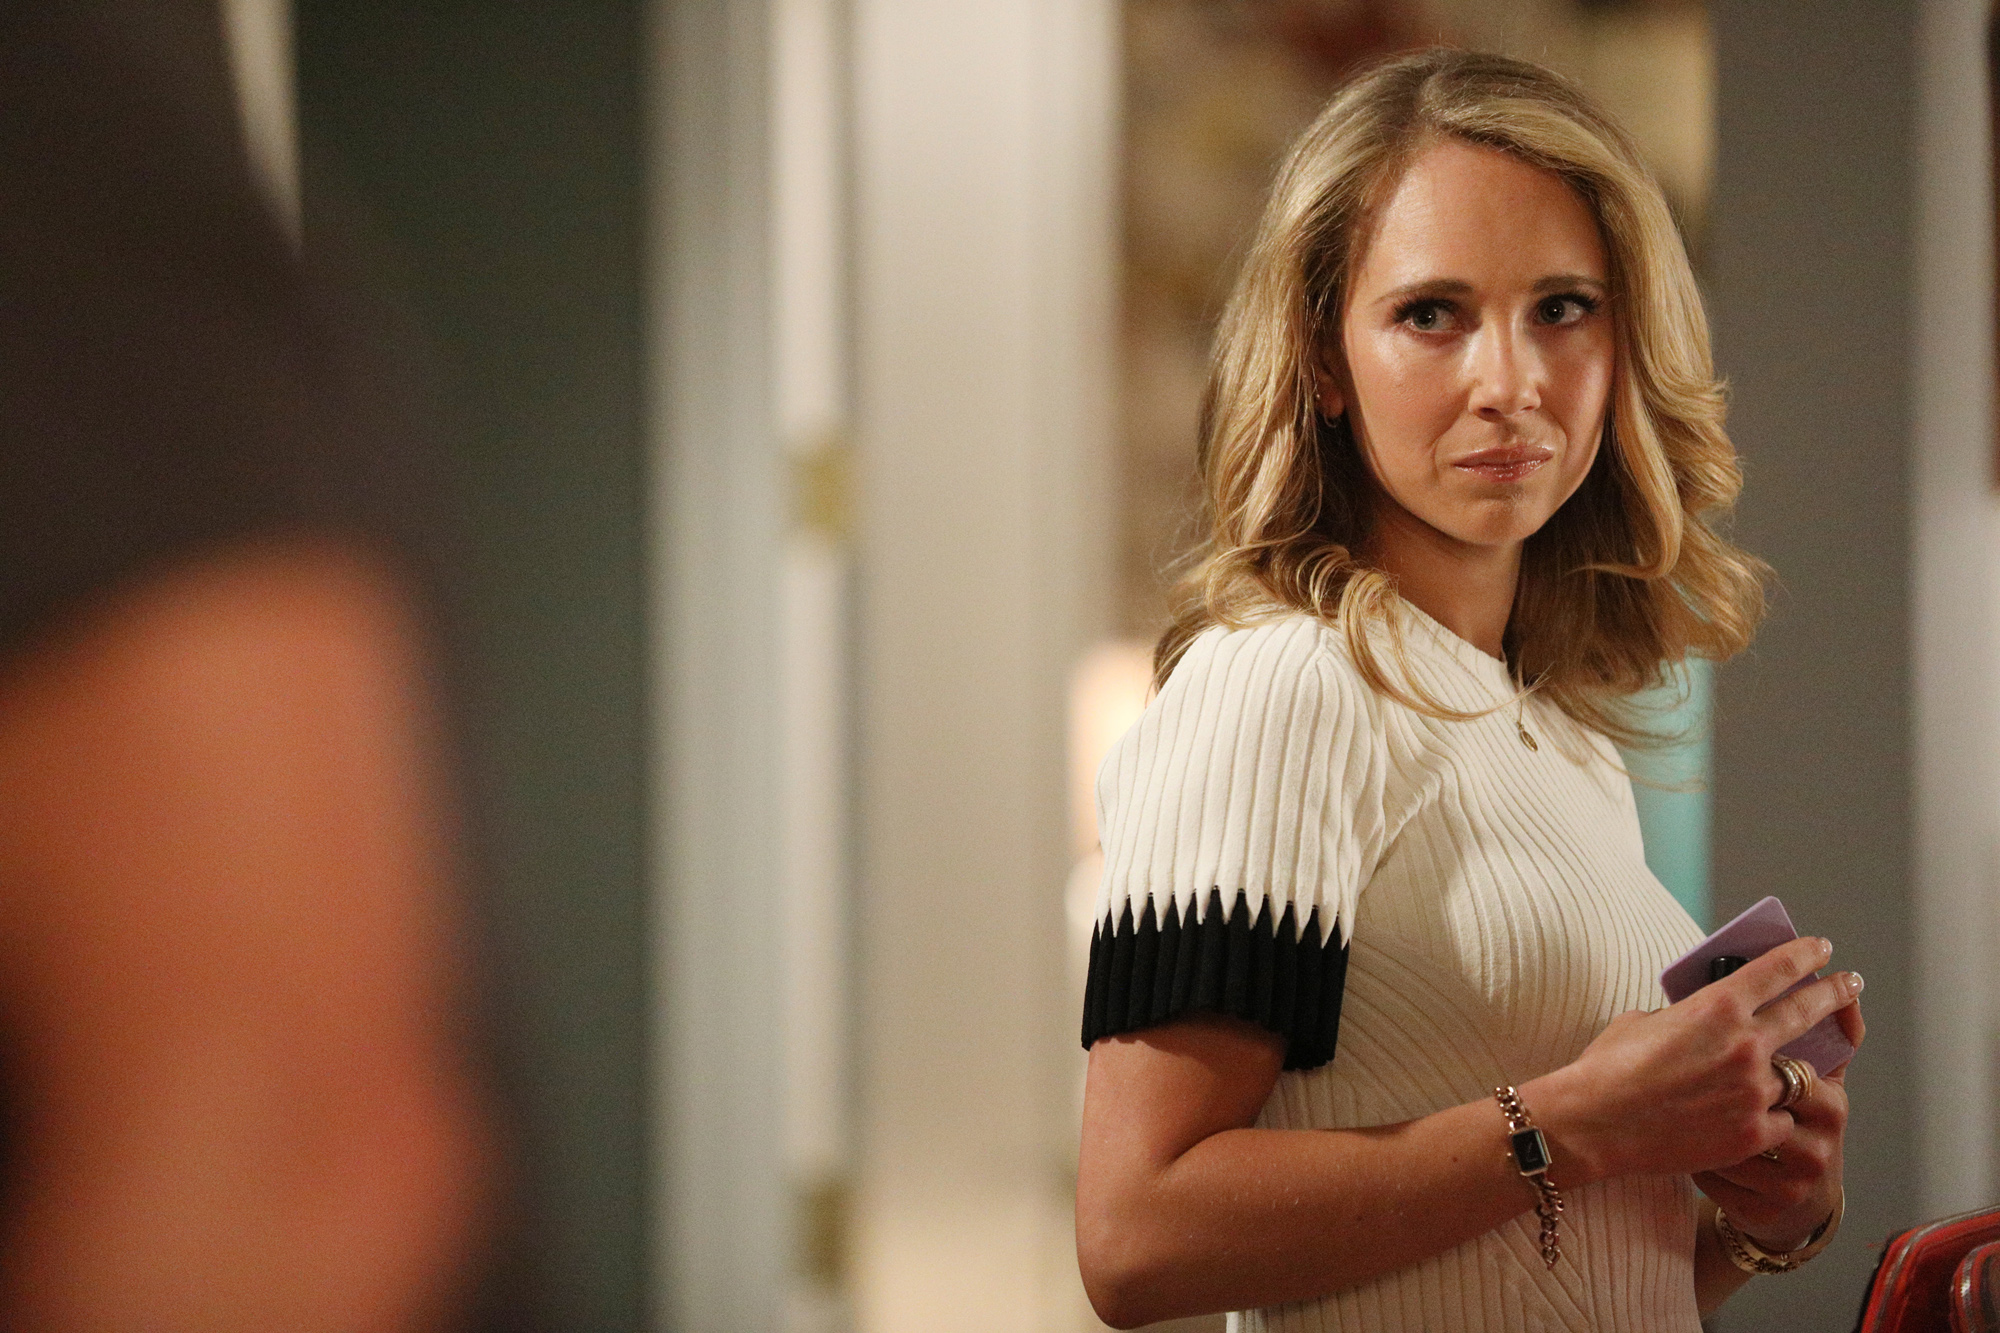 """DIRTY JOHN -- """"Approachable Dreams"""" Episode 101 -- Pictured: Juno Temple as Veronica Newell -- (Photo by: Jordin Althaus/Bravo)"""